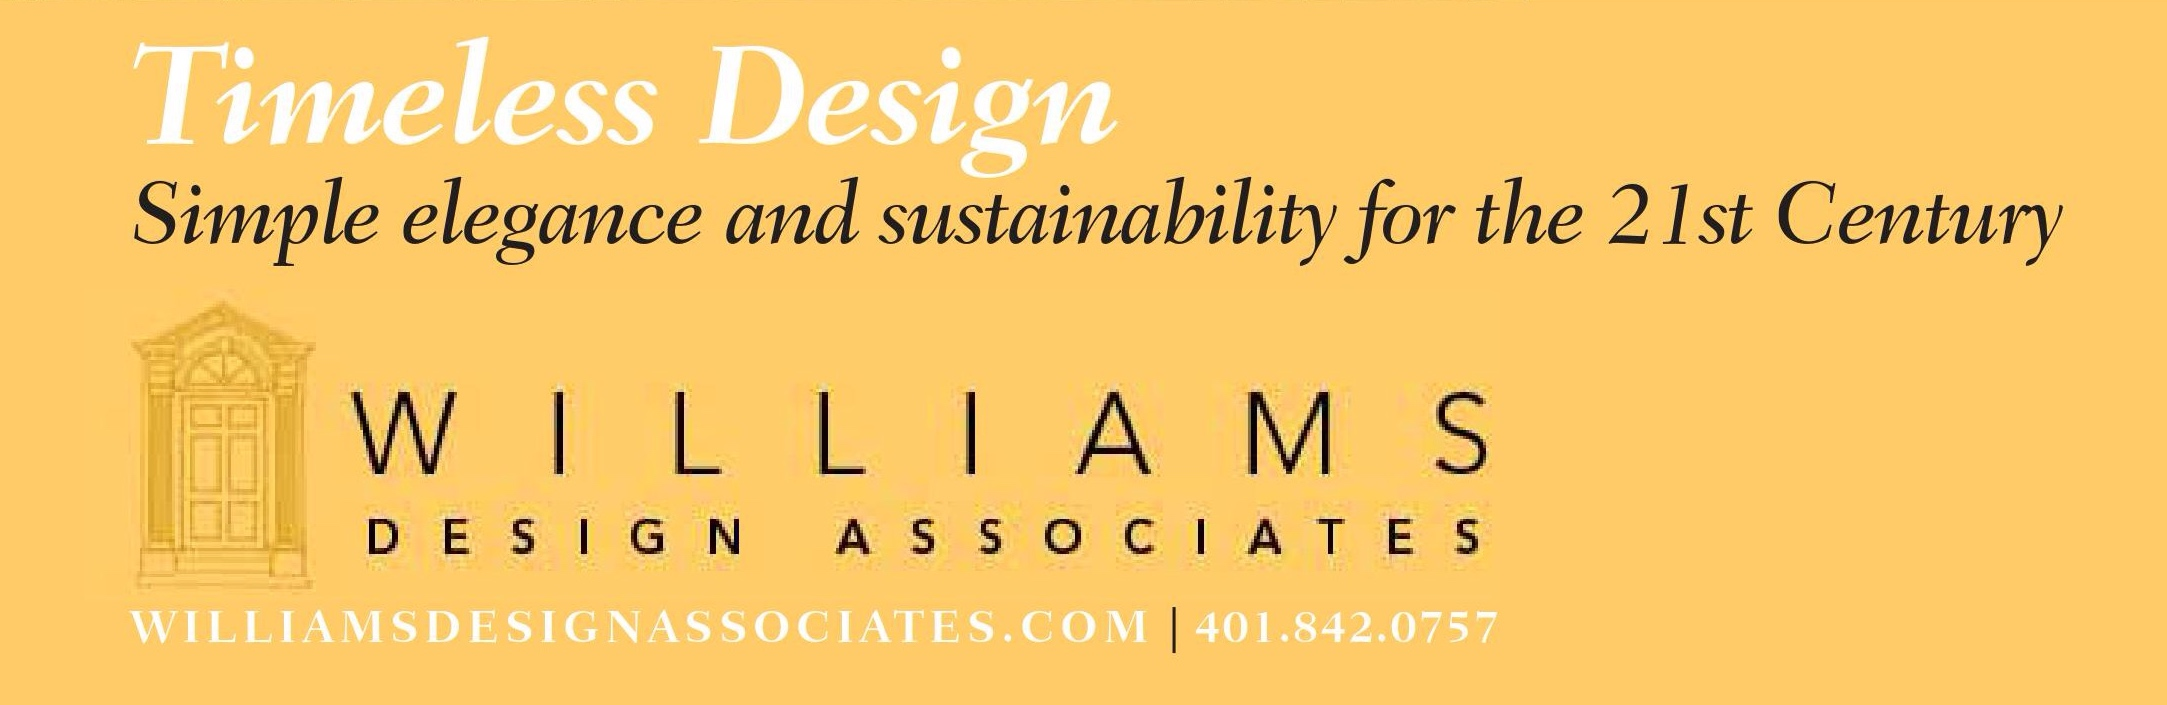 Williams Design